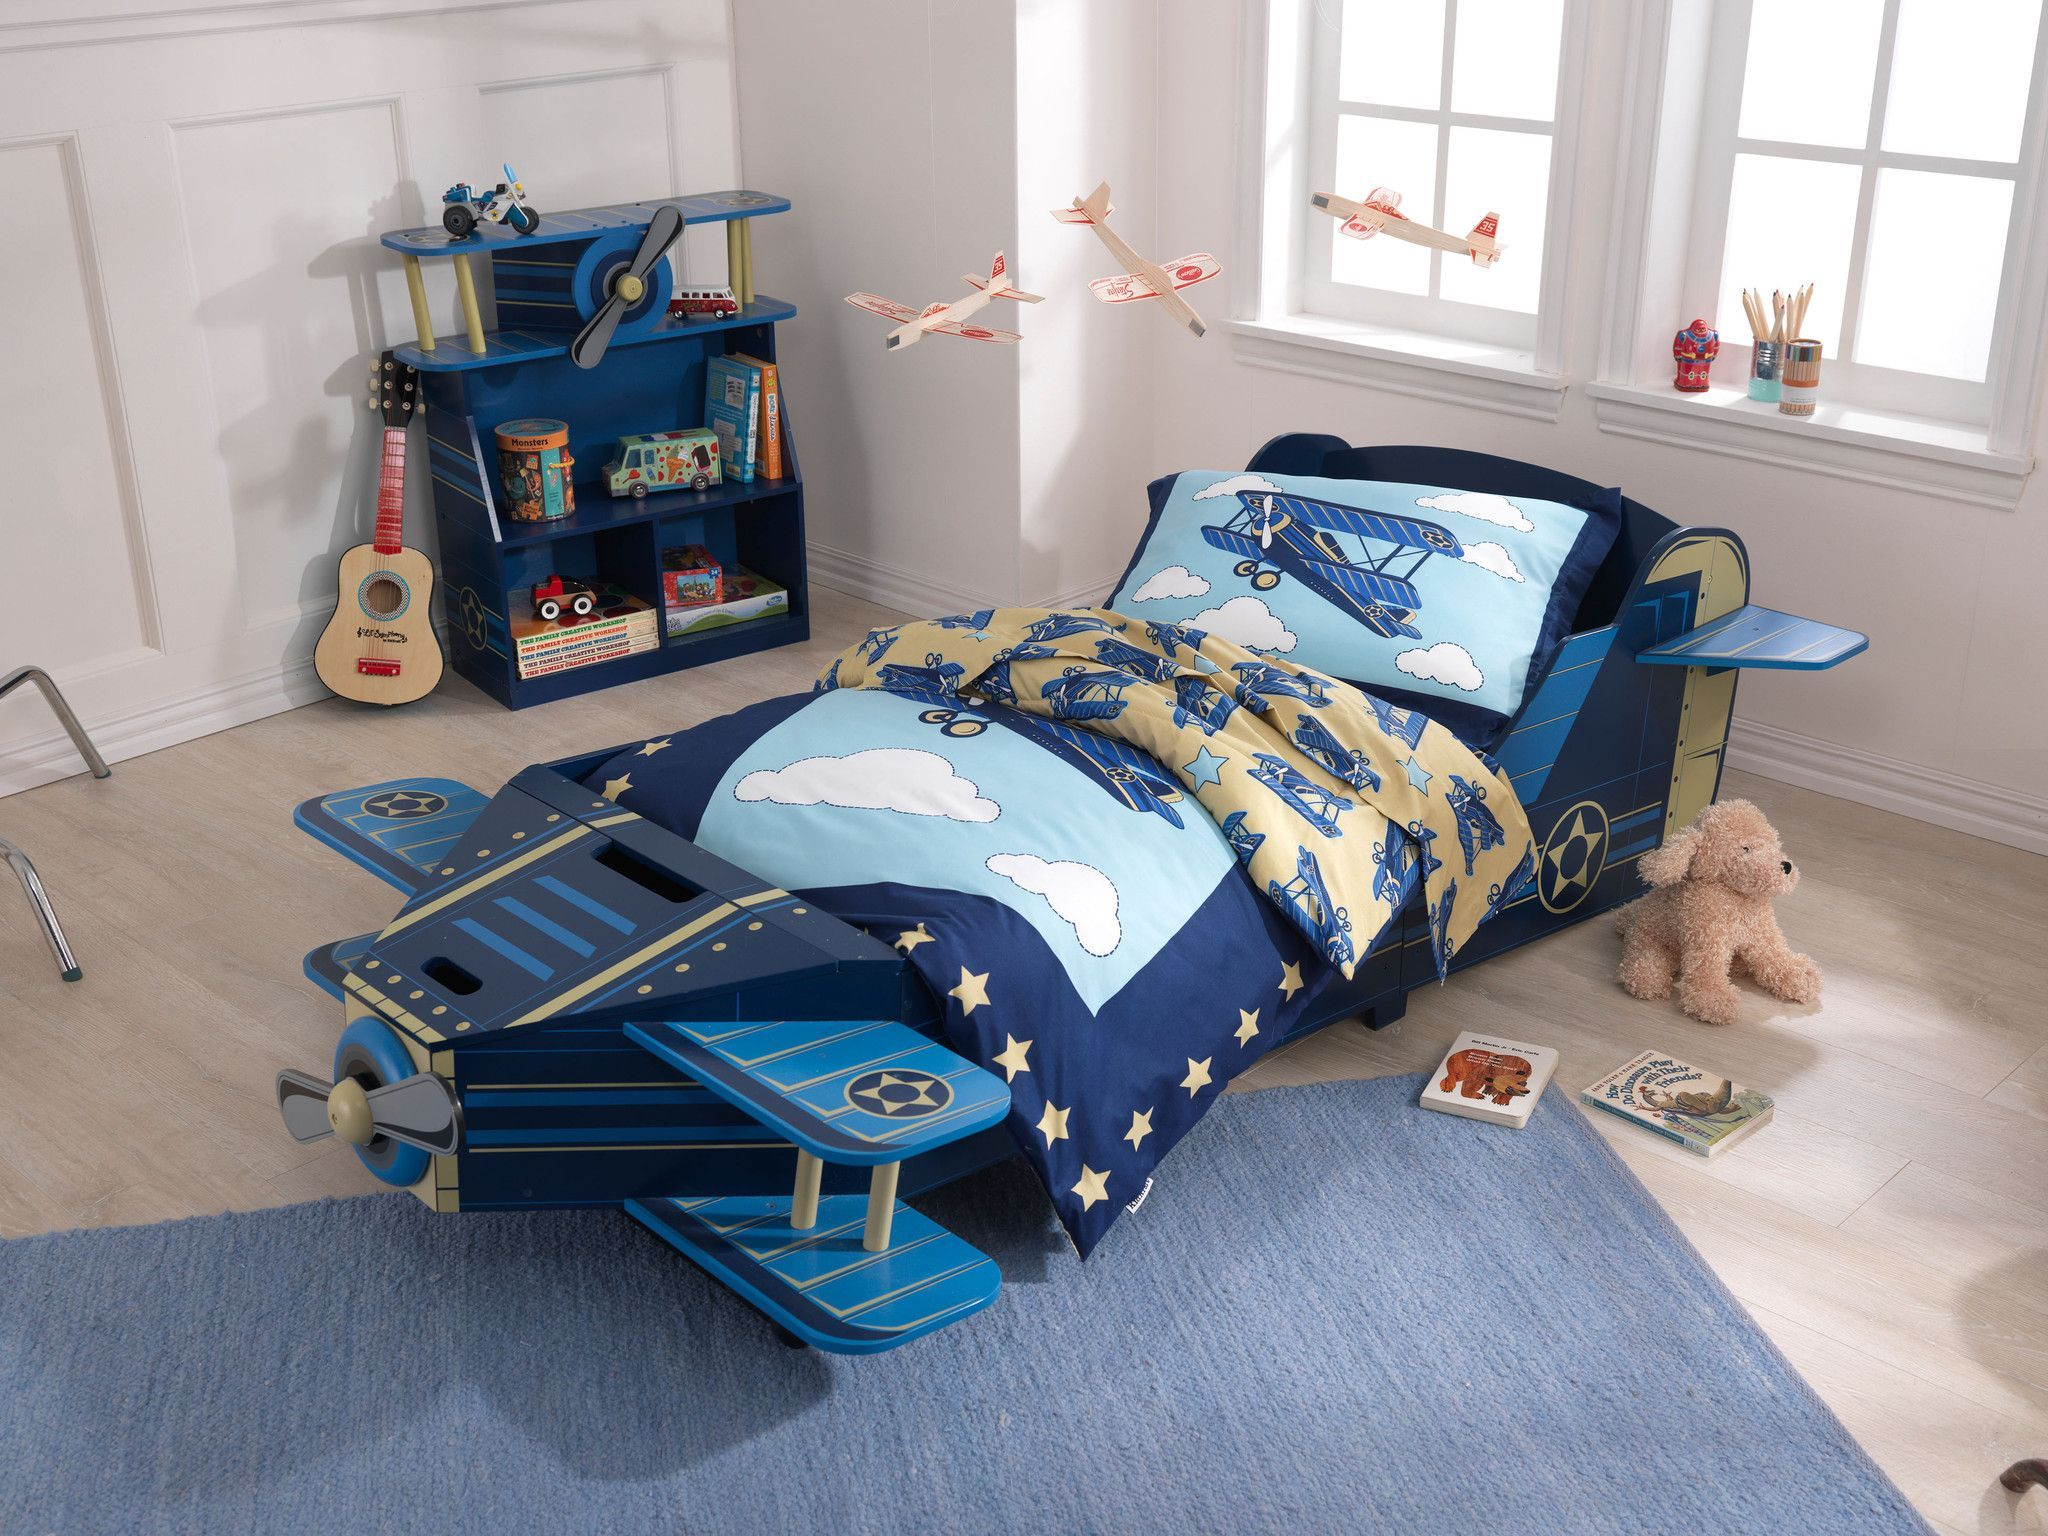 superior Kidkraft Airplane Toddler Bed Part - 5: KidKraft Airplane Toddler Bed - 76269 $183